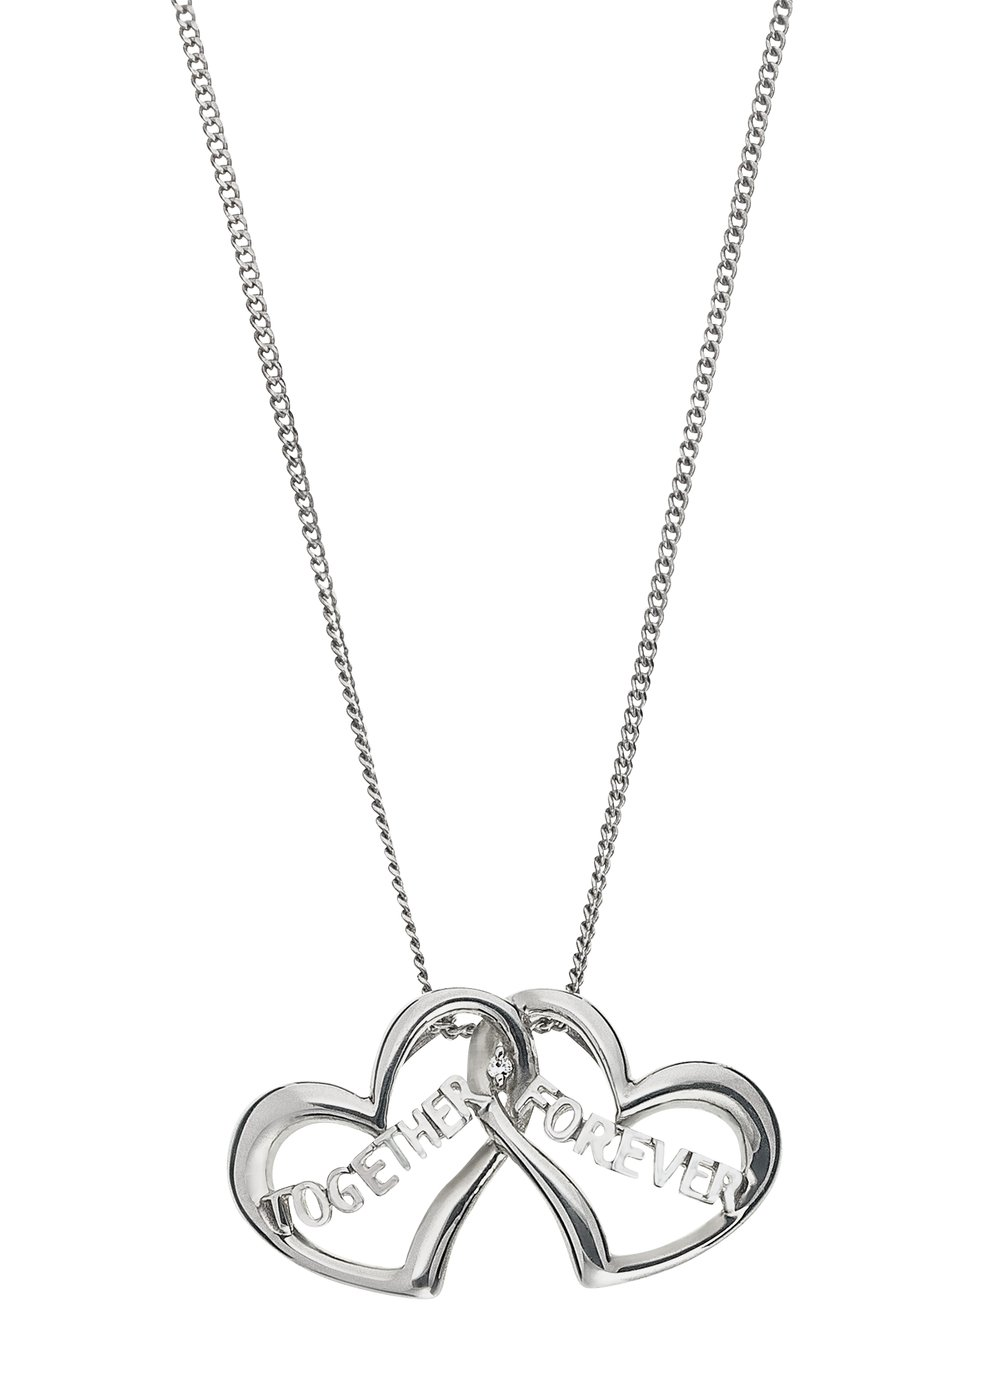 Image of Sterling Silver - CZ 'Together Forever' Hearts Pendant.